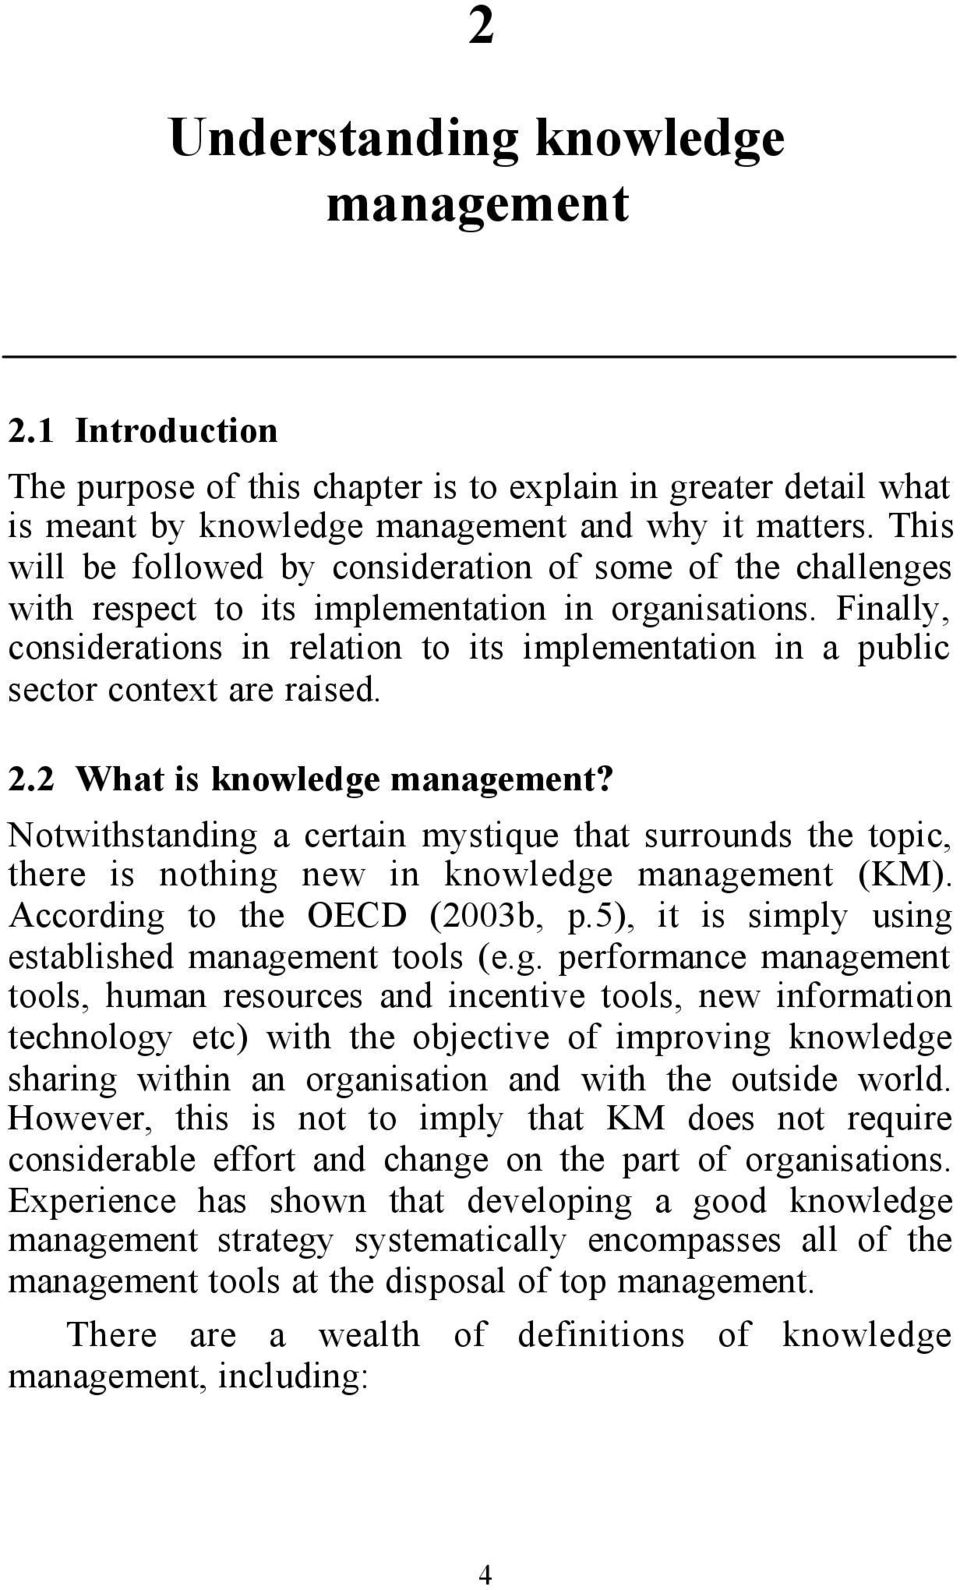 Finally, considerations in relation to its implementation in a public sector context are raised. 2.2 What is knowledge management?